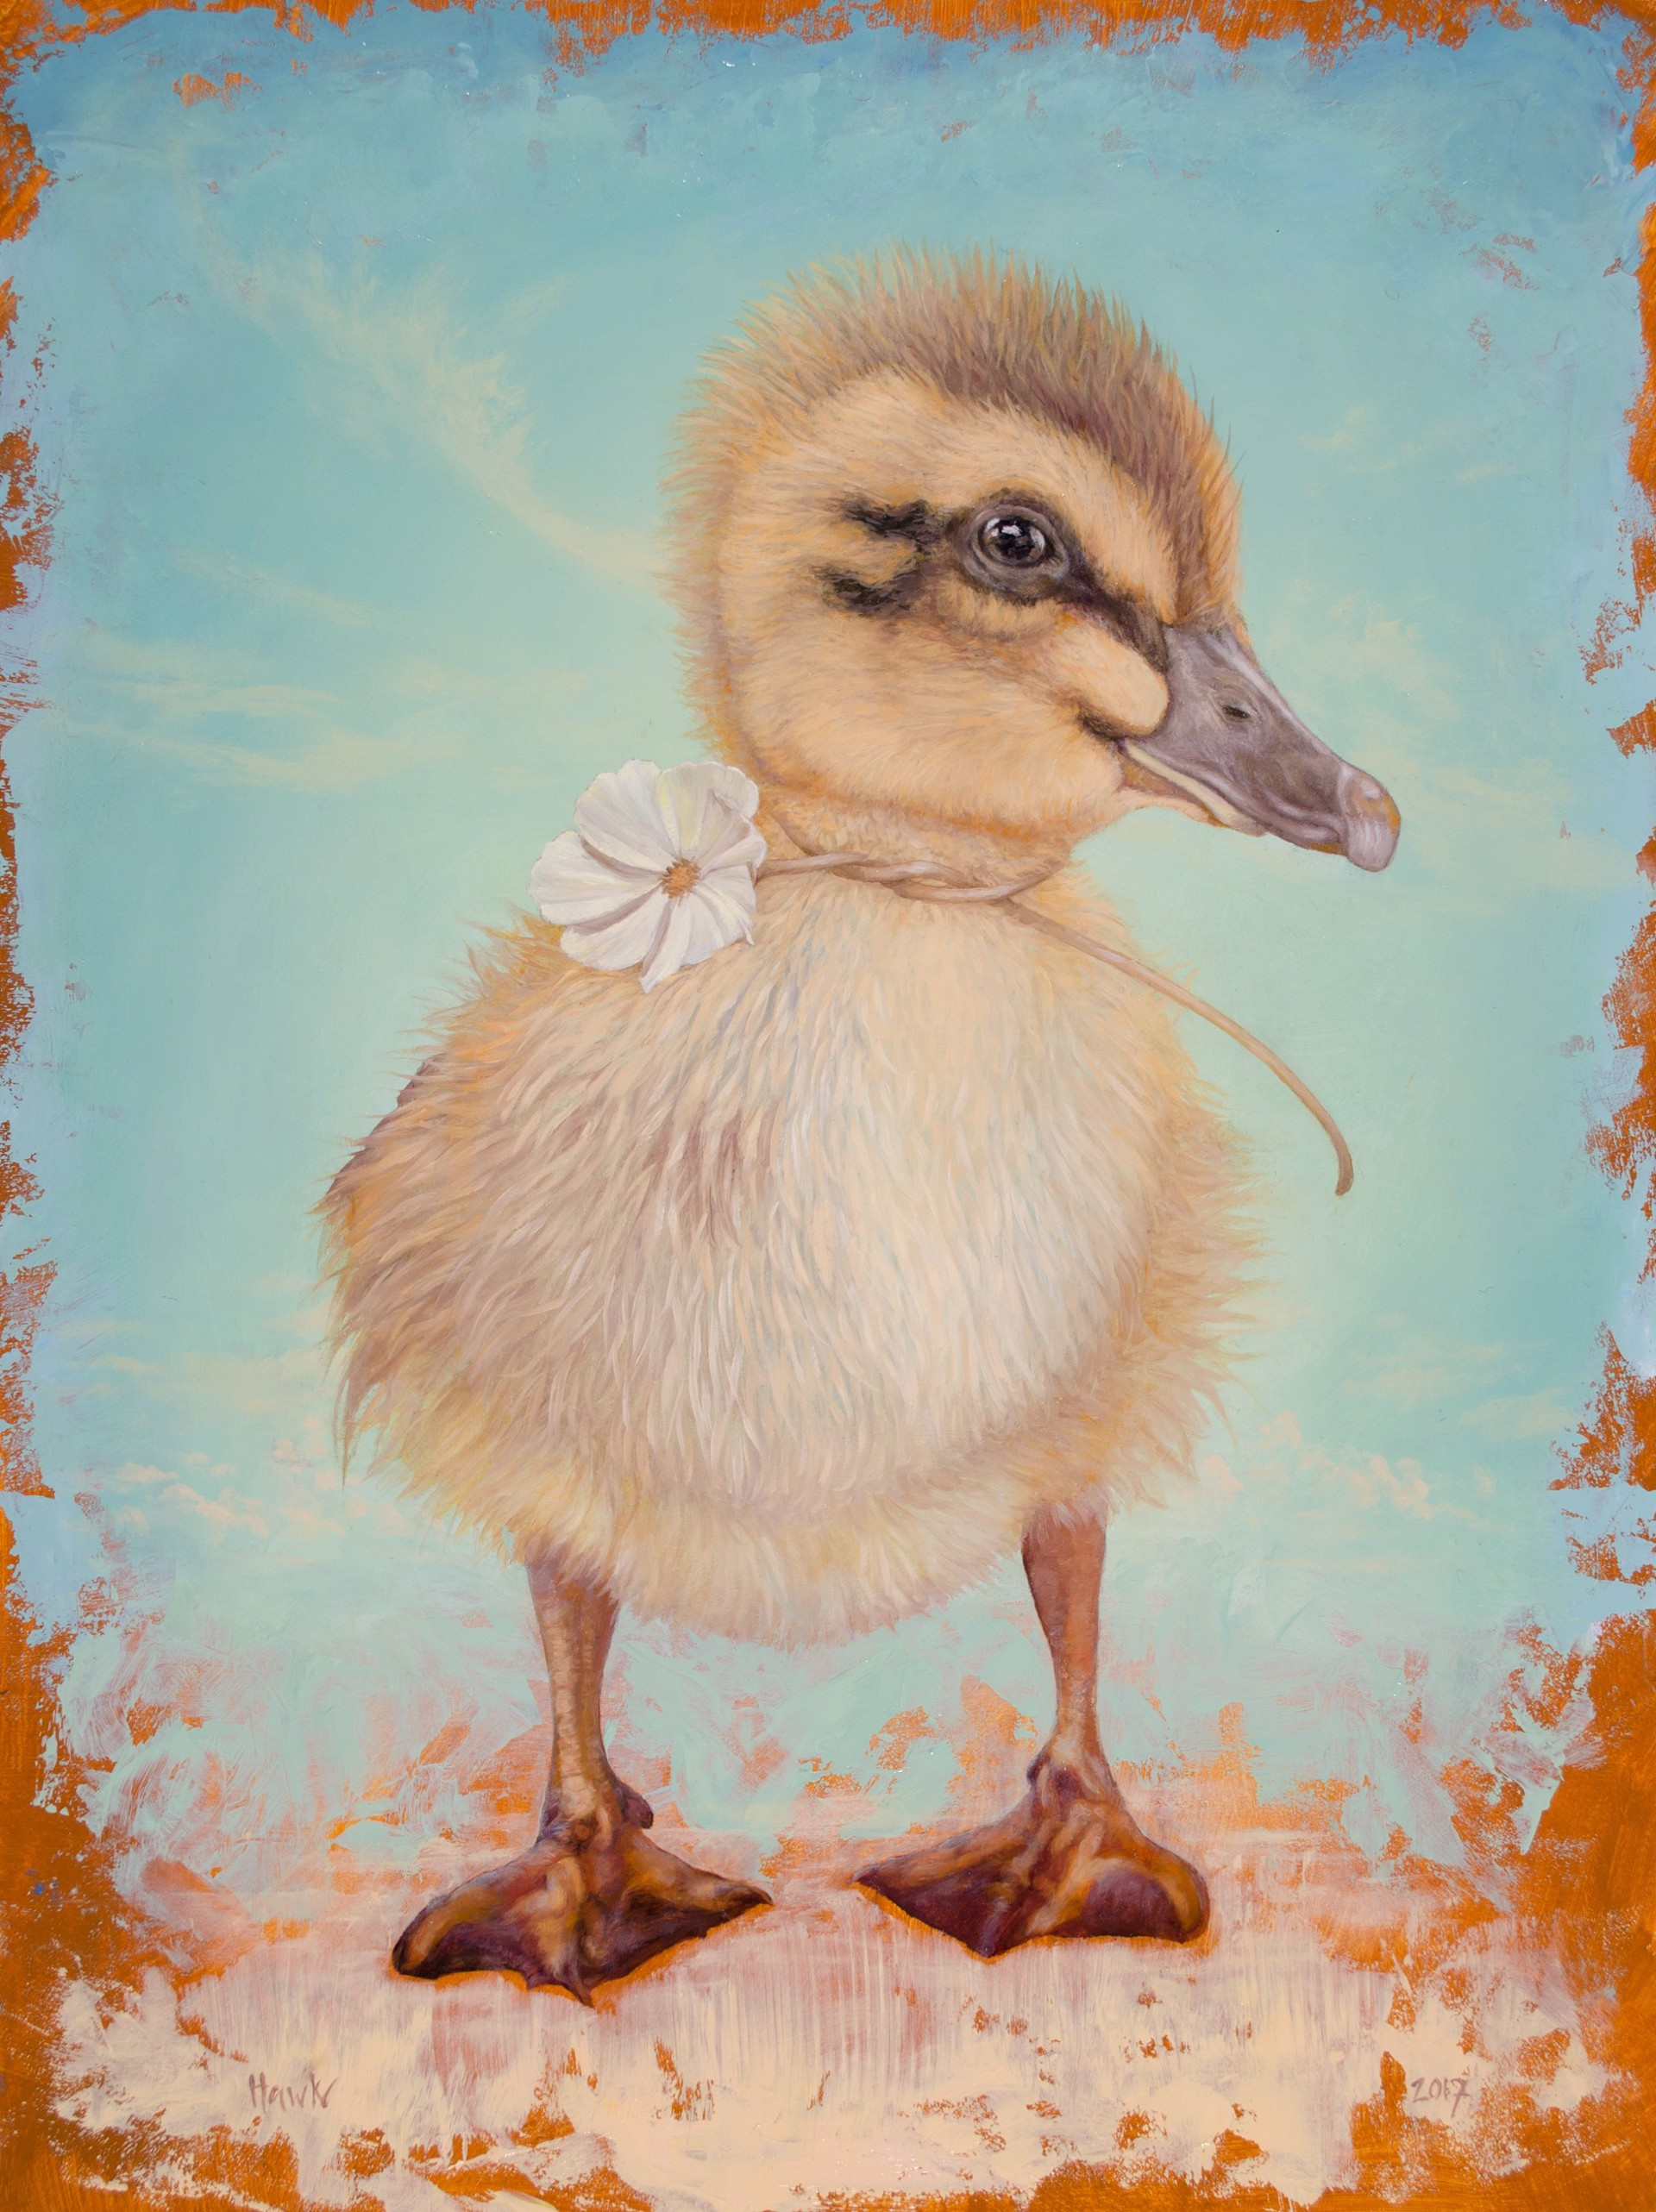 The Children's Hospital Duckling commission by Dana Hawk